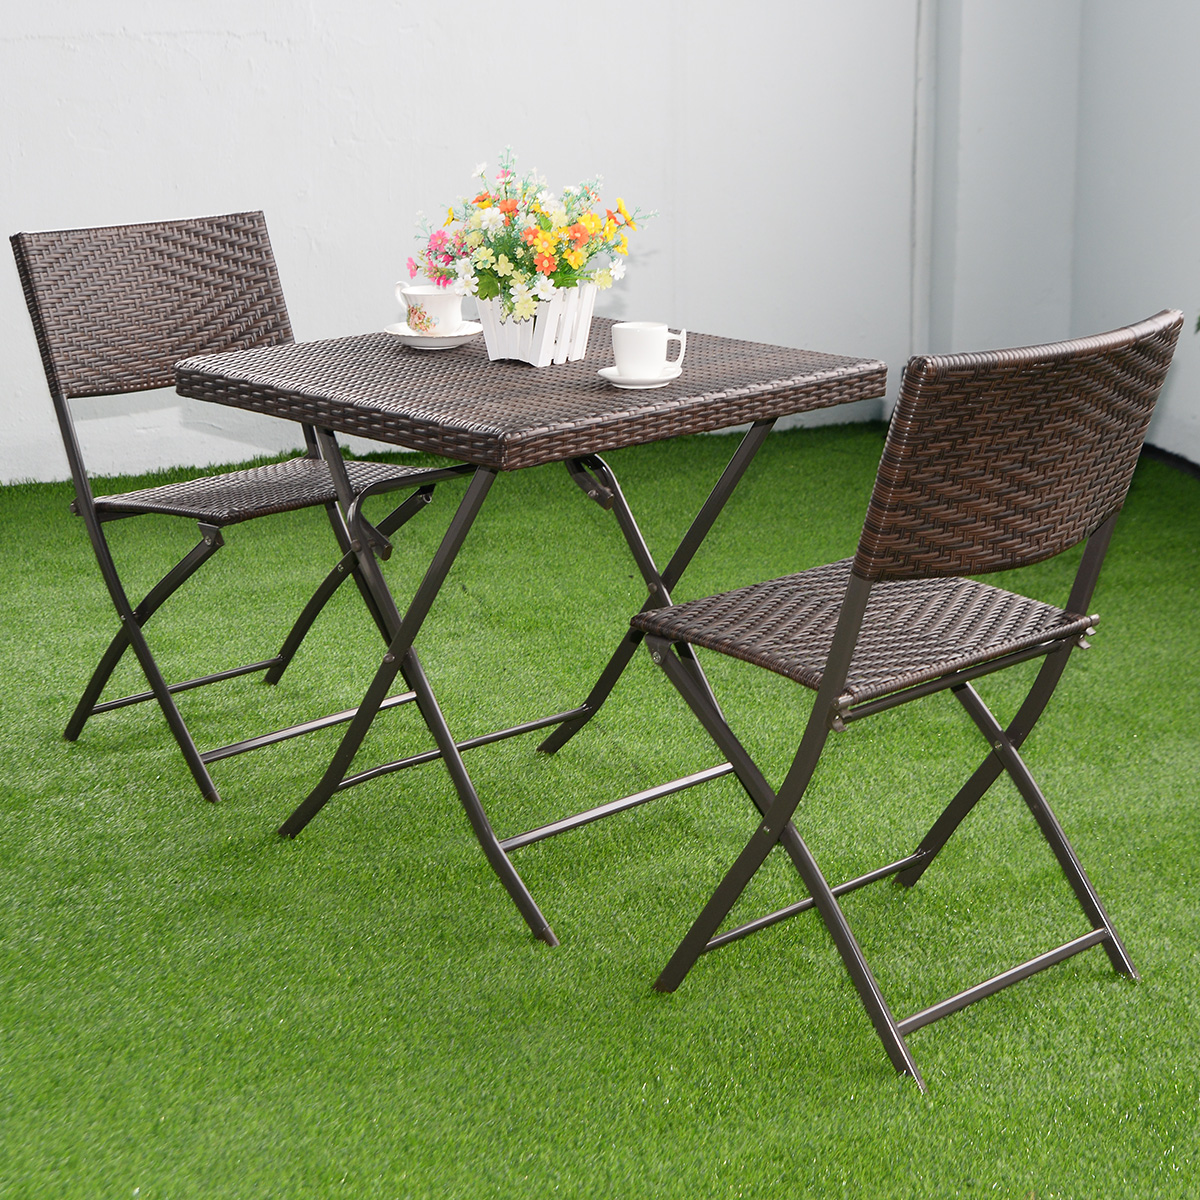 Costway 3 PC Outdoor Folding Table Chair Furniture Set Rattan Wicker Bistro  Patio Brown   Walmart.com